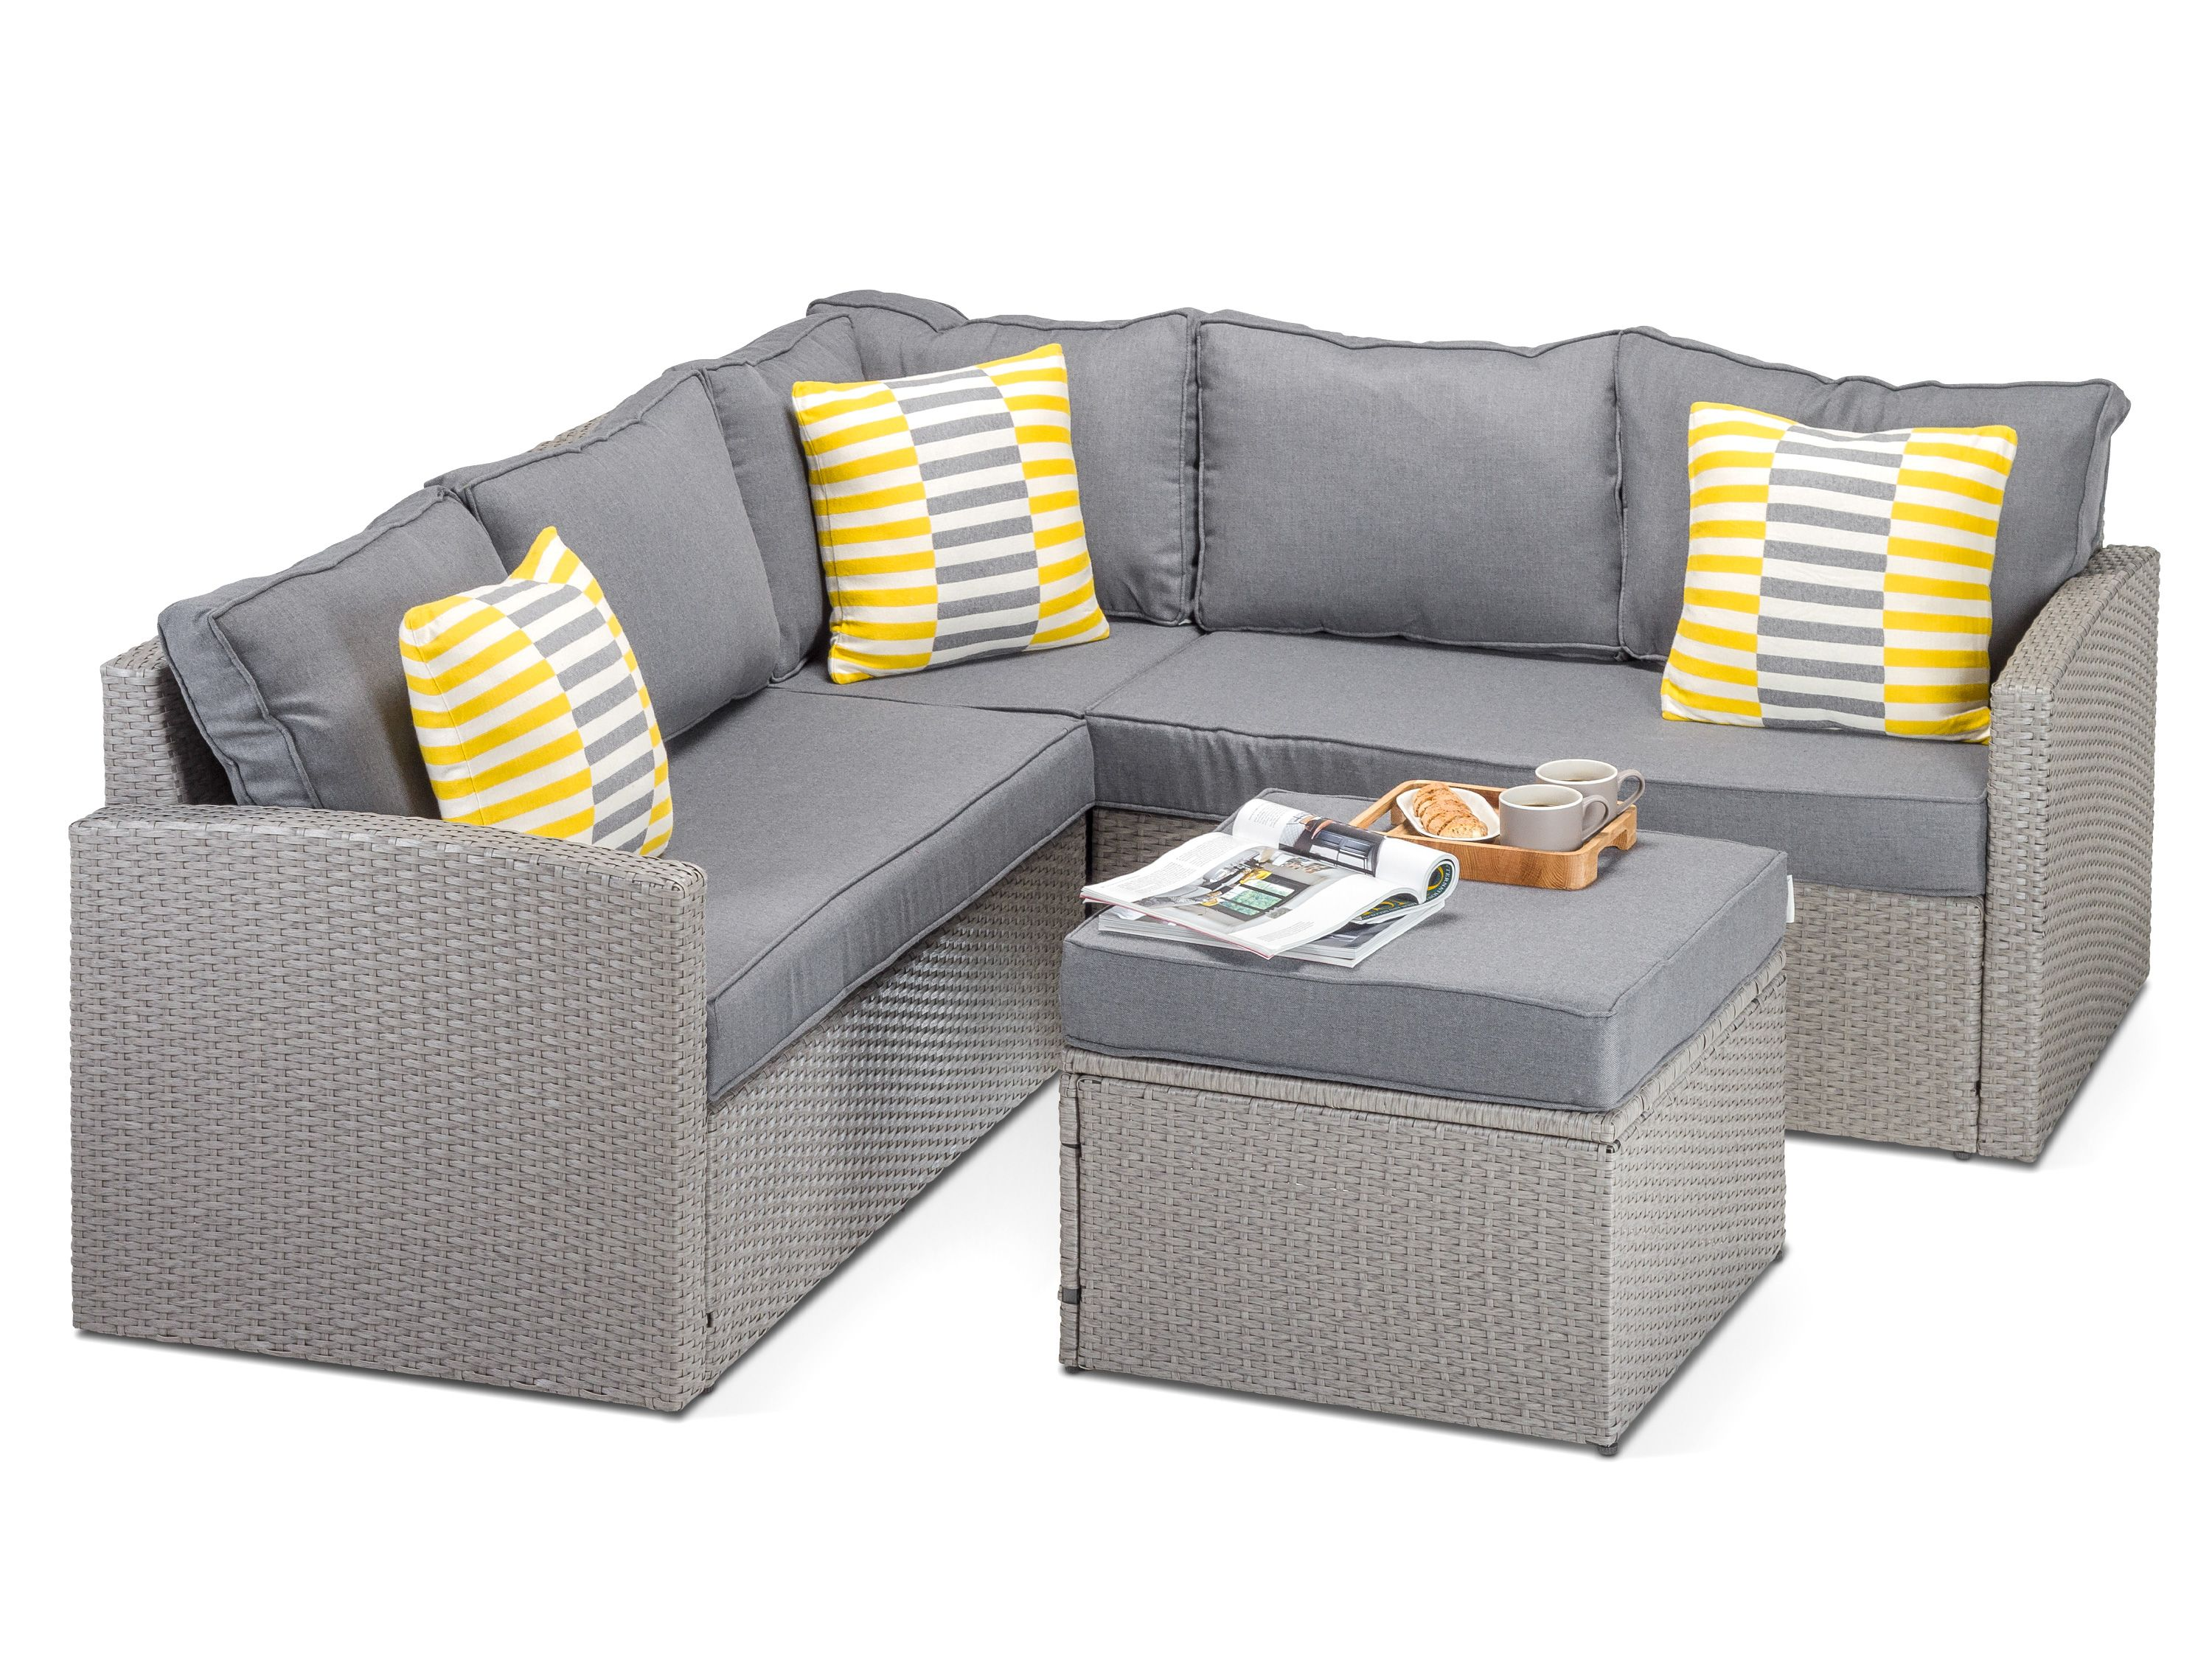 Rattan Sofa Set Online India Leather Sectional Sofas With Recliners Garden Grey Microfinanceindia Org